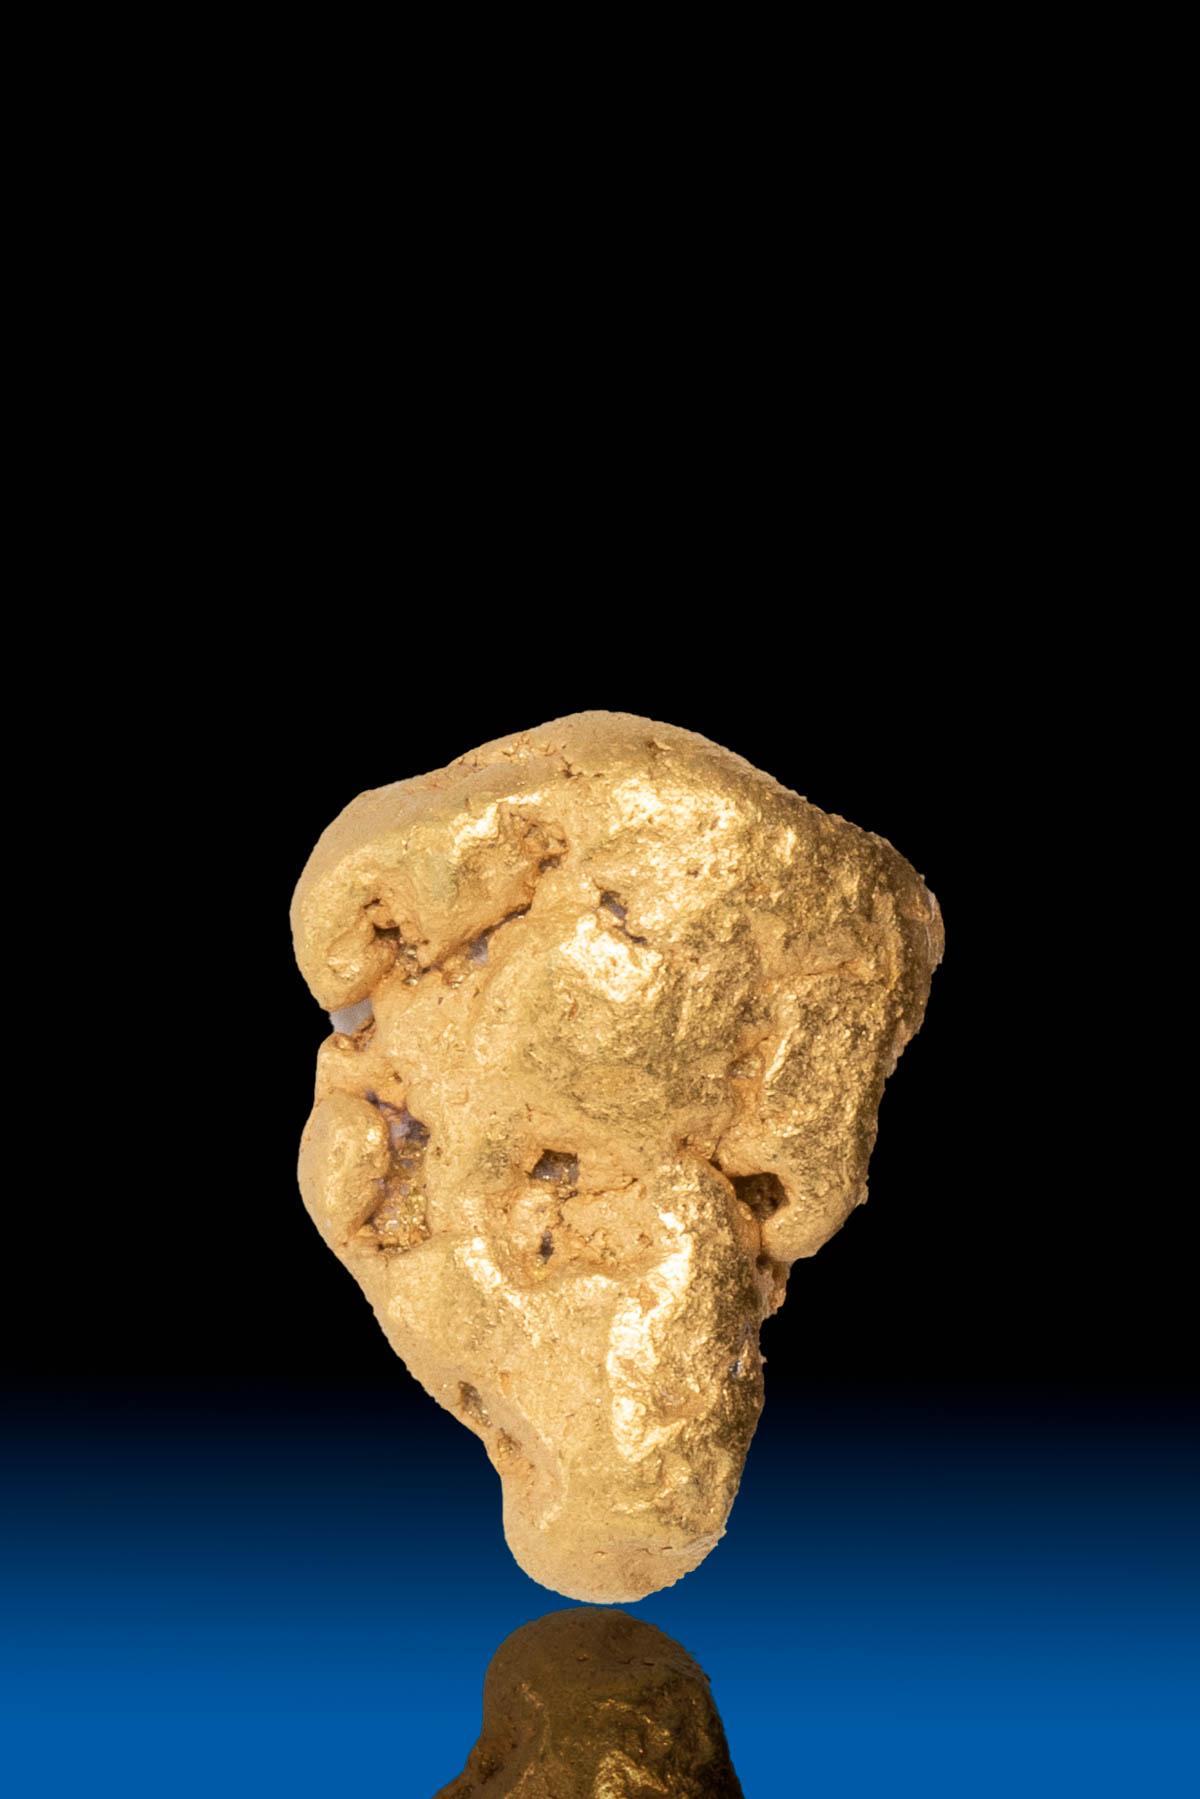 Funnel Shaped Natural Yukon Gold Nugget - 3.01 grams